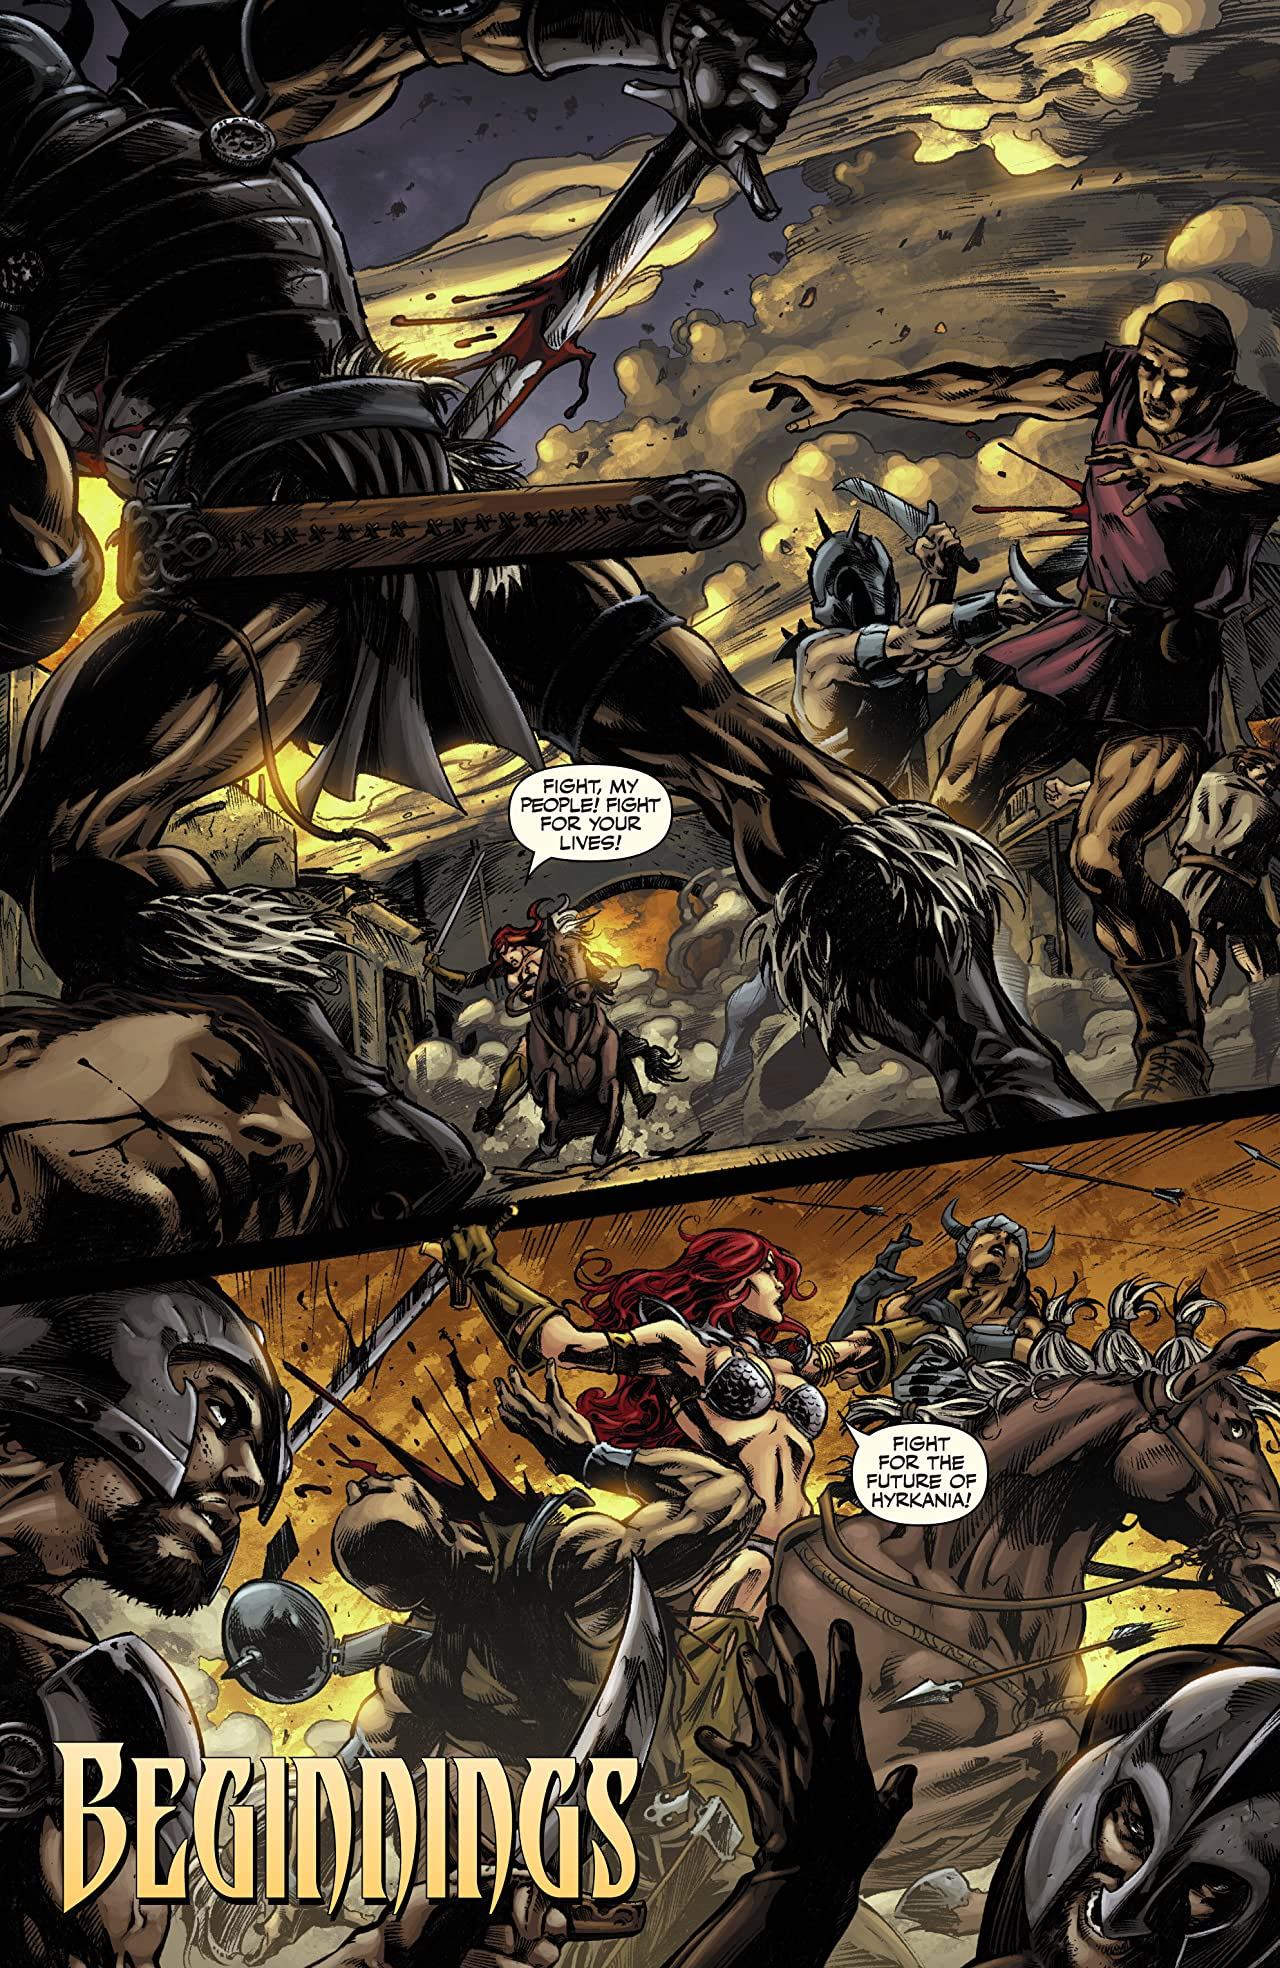 Red Sonja Vs. Thulsa Doom #1 (of 4)